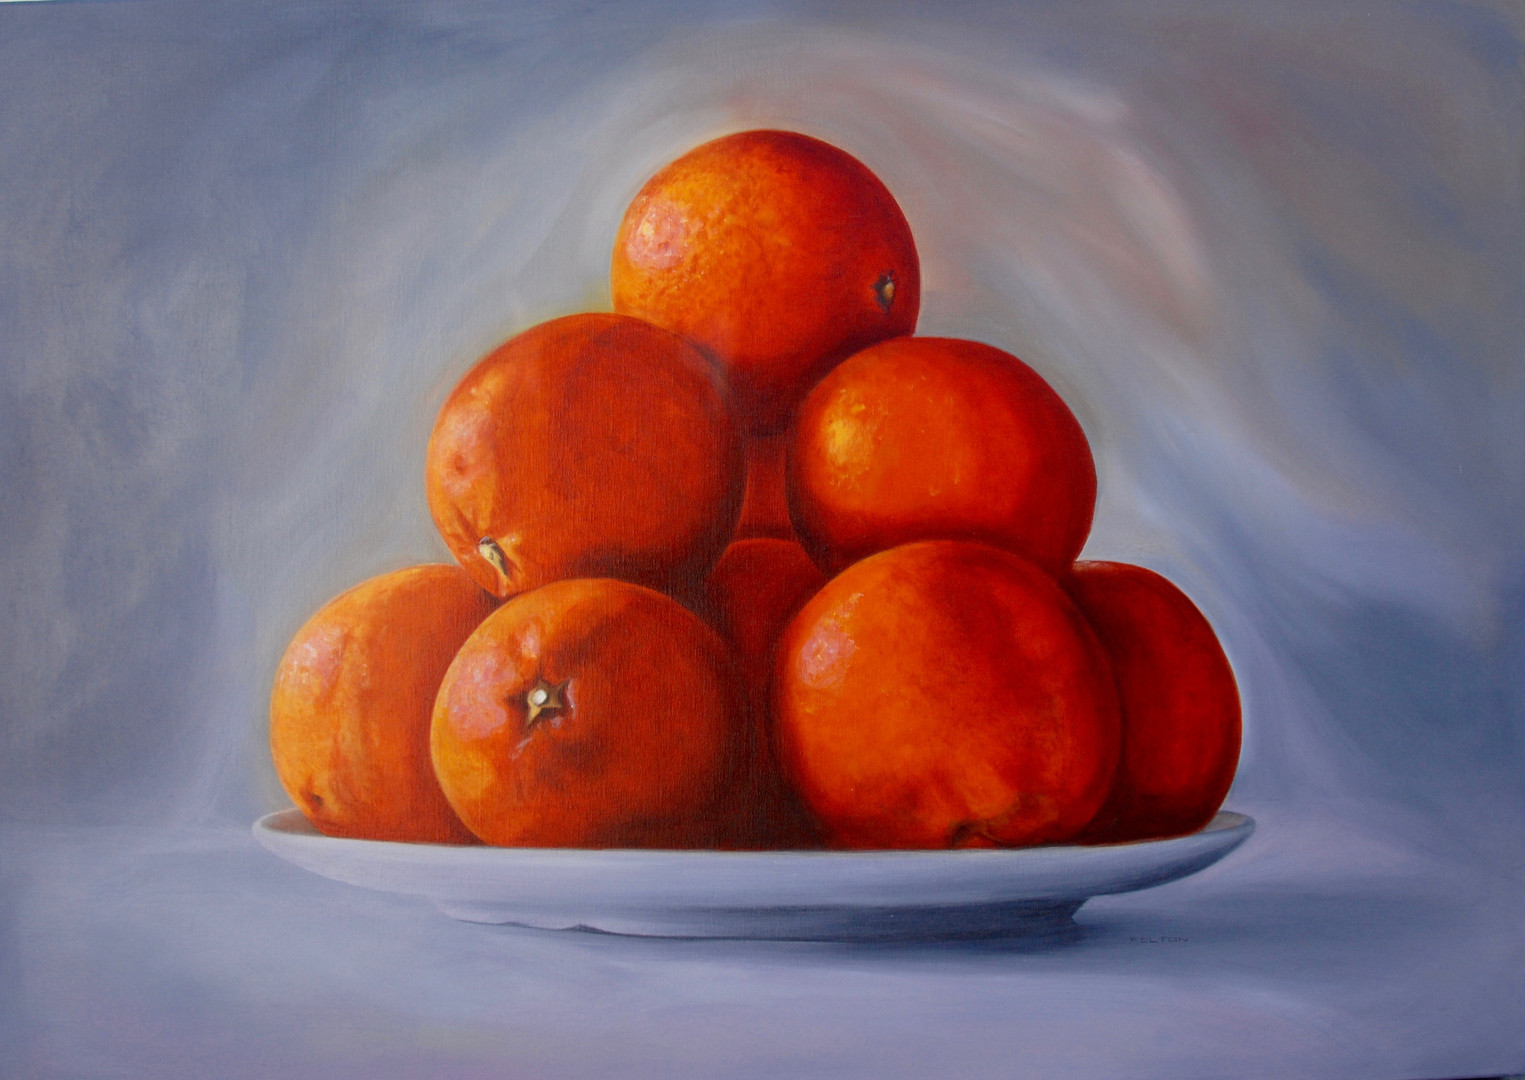 Blood Oranges, White Plate - K. FELTON.j